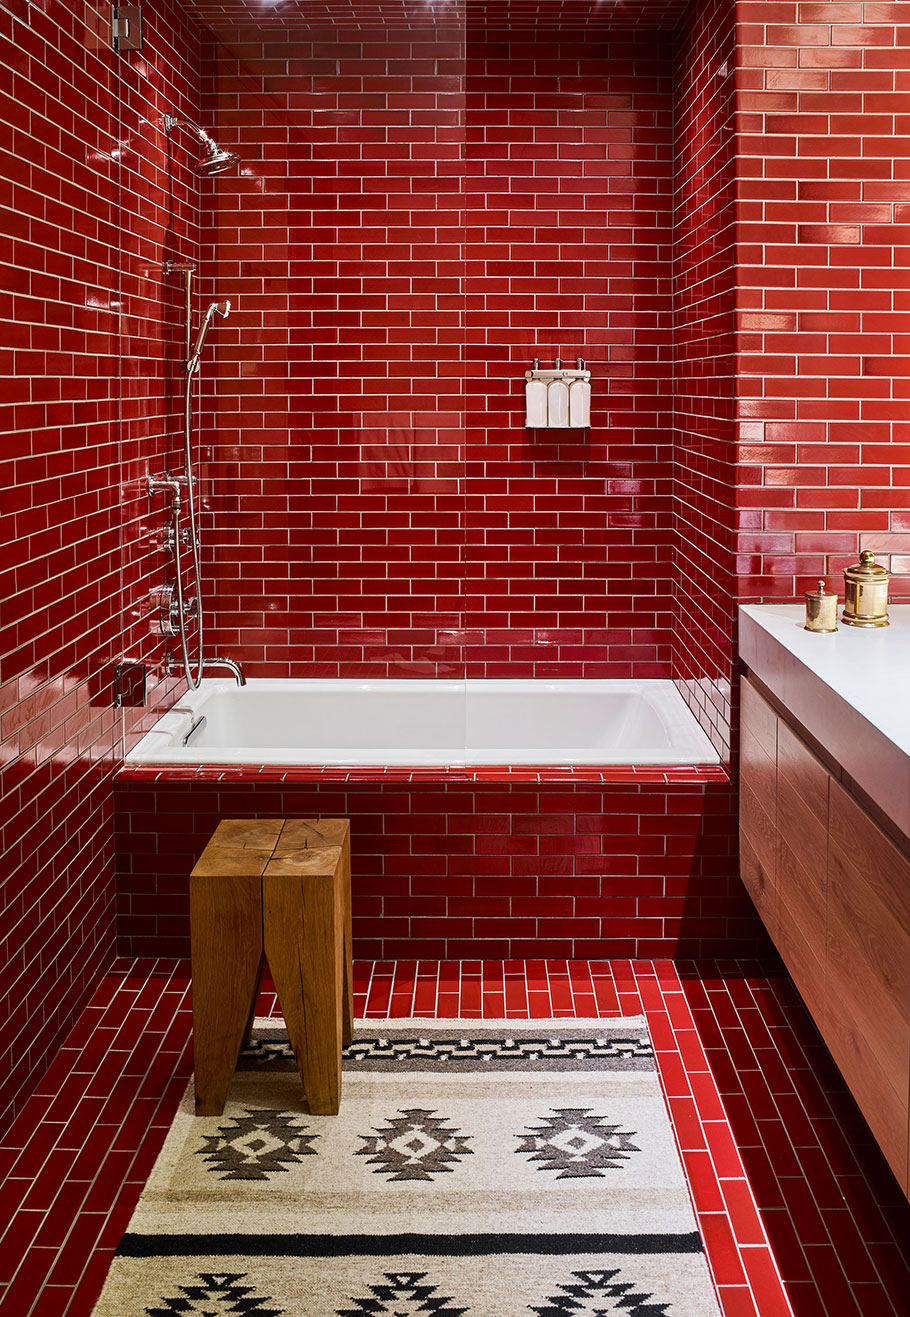 bathroom with red tiles - caldera house